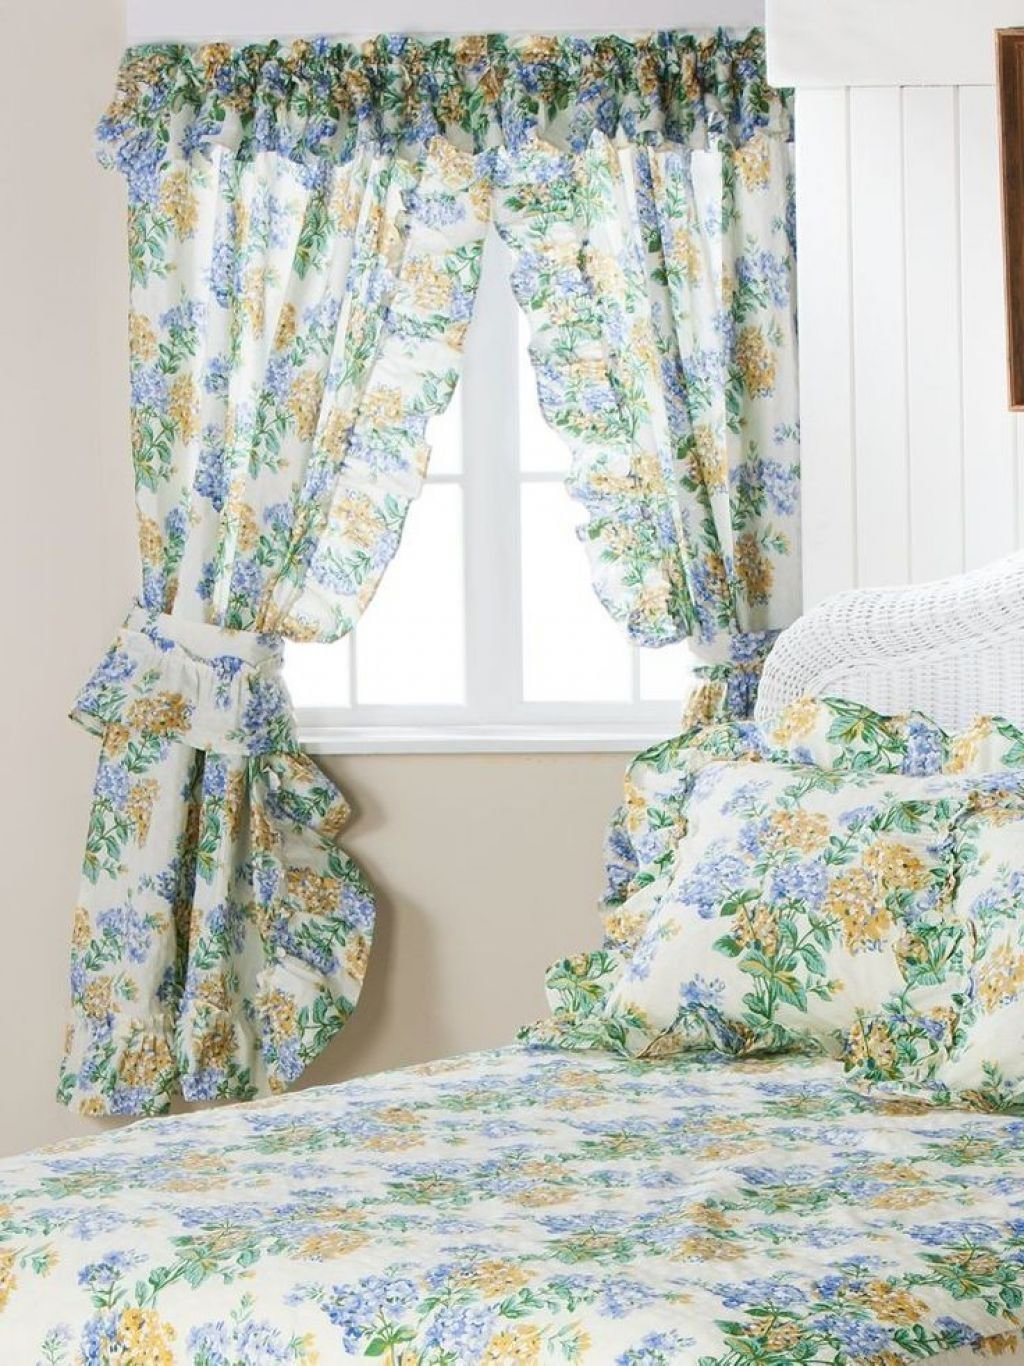 Best 37 Unique And Super Colourful Bedroom Curtain Designs And With Pictures